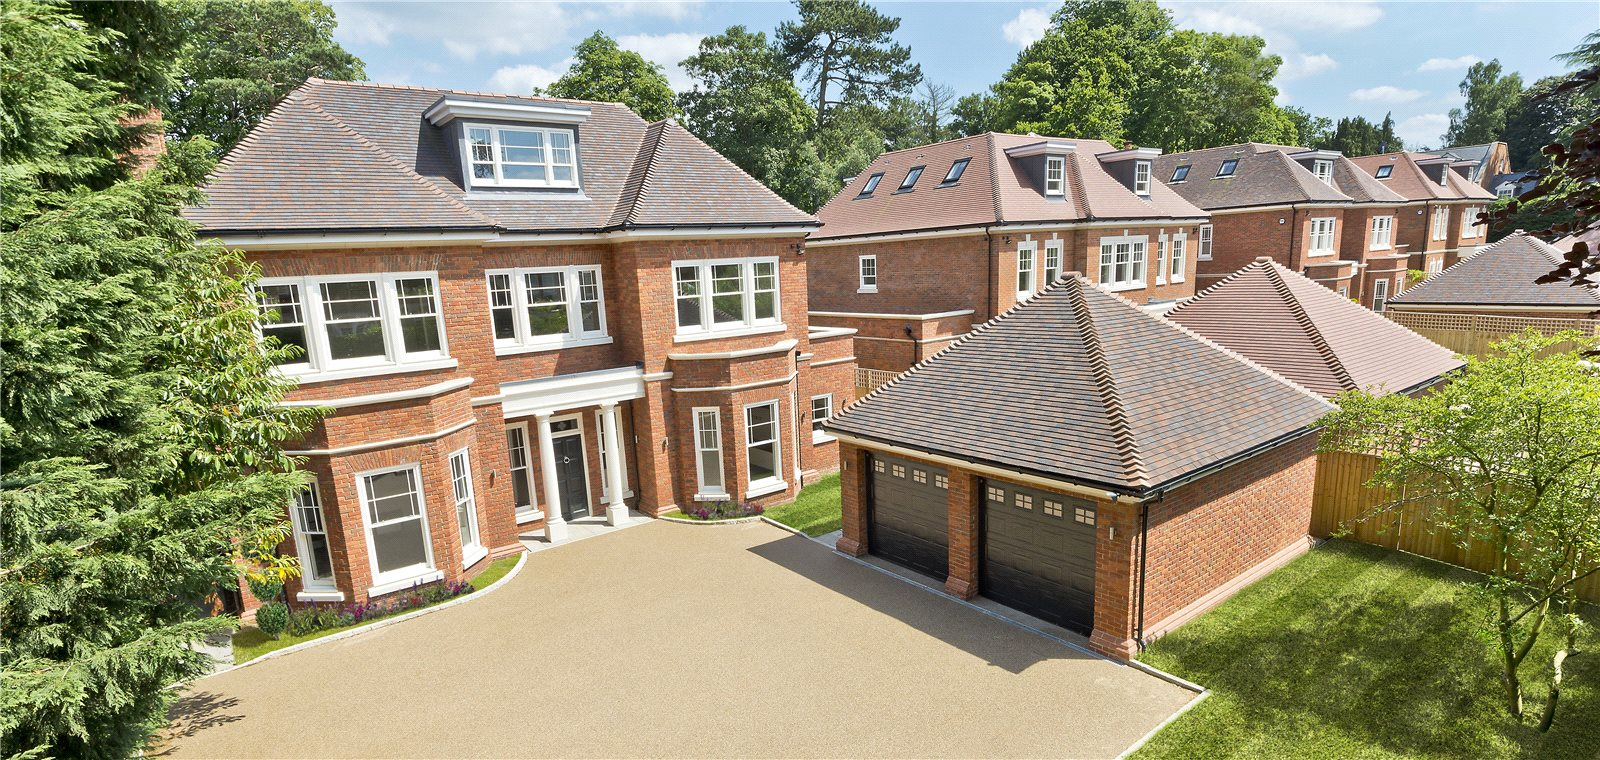 Additional photo for property listing at London Road, Ascot, Berkshire, SL5 Ascot, England